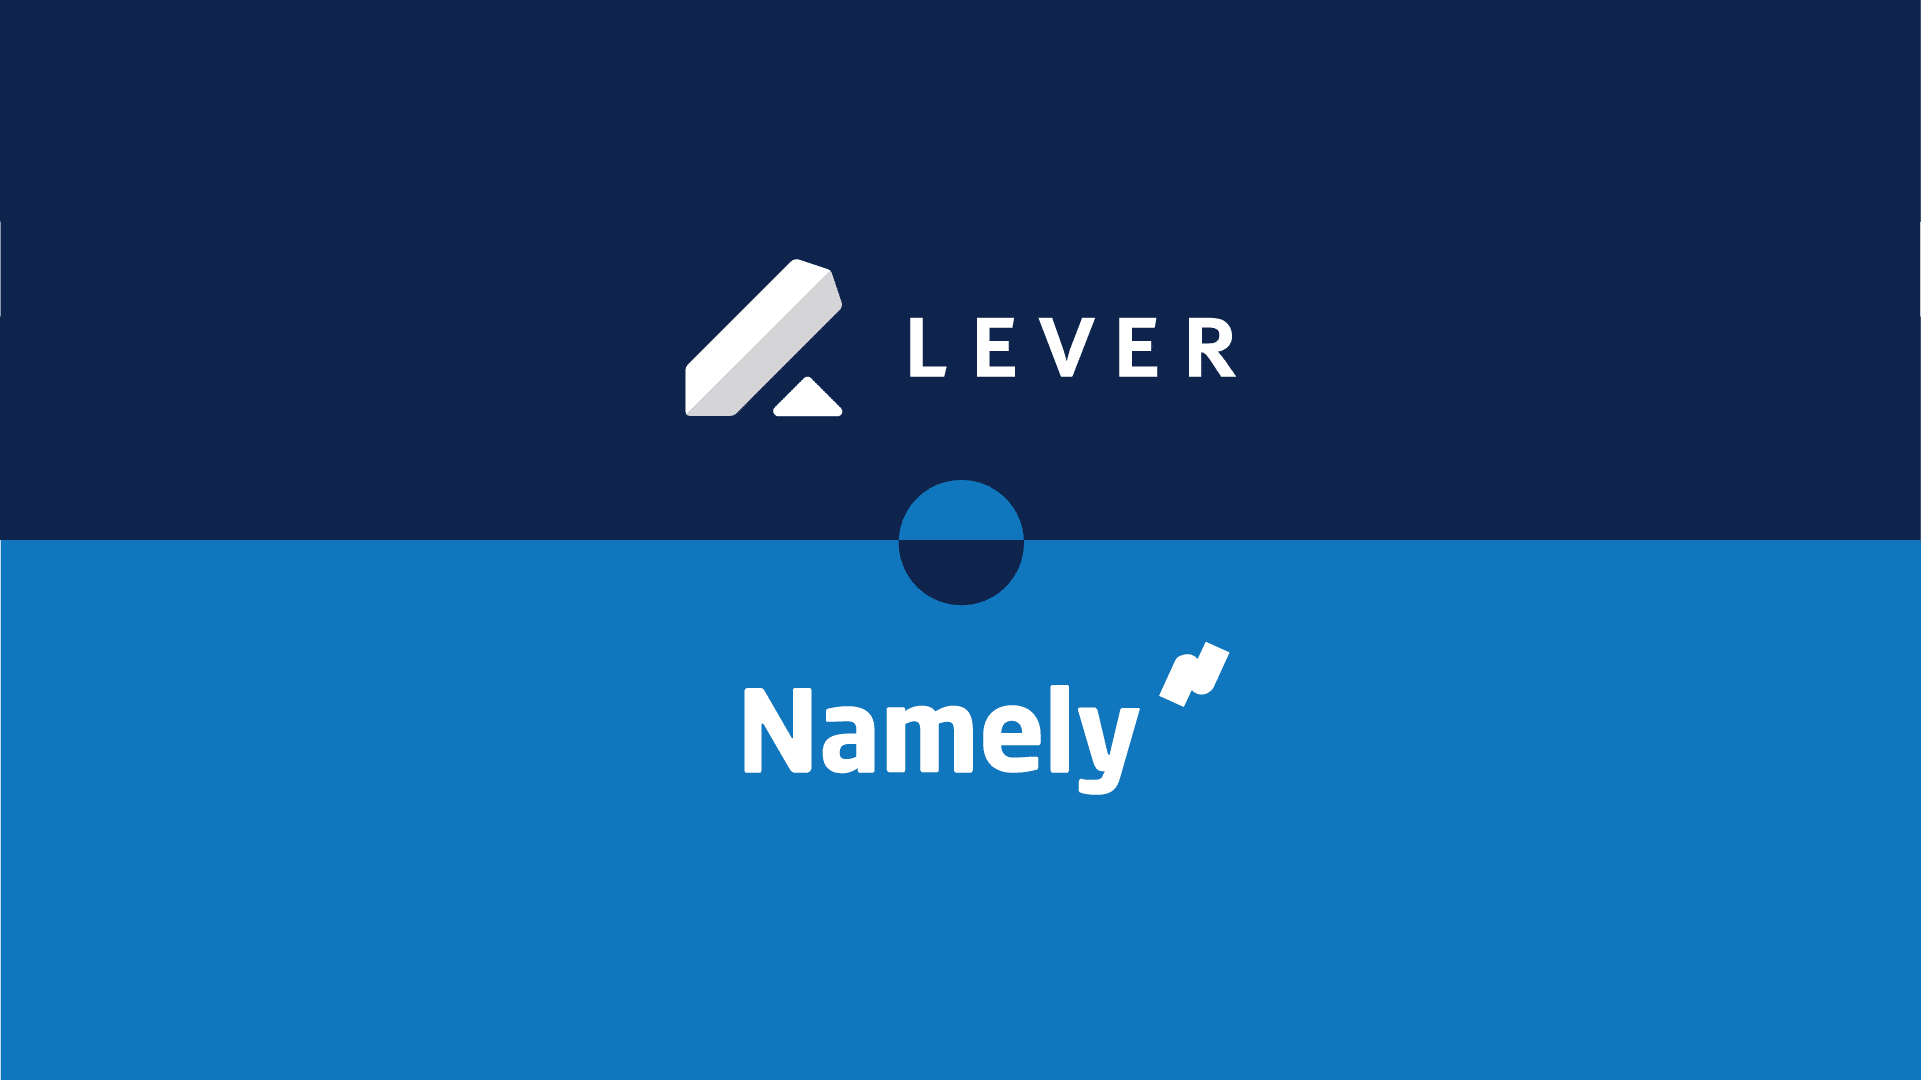 Namely Lever Blog Banner Announcement